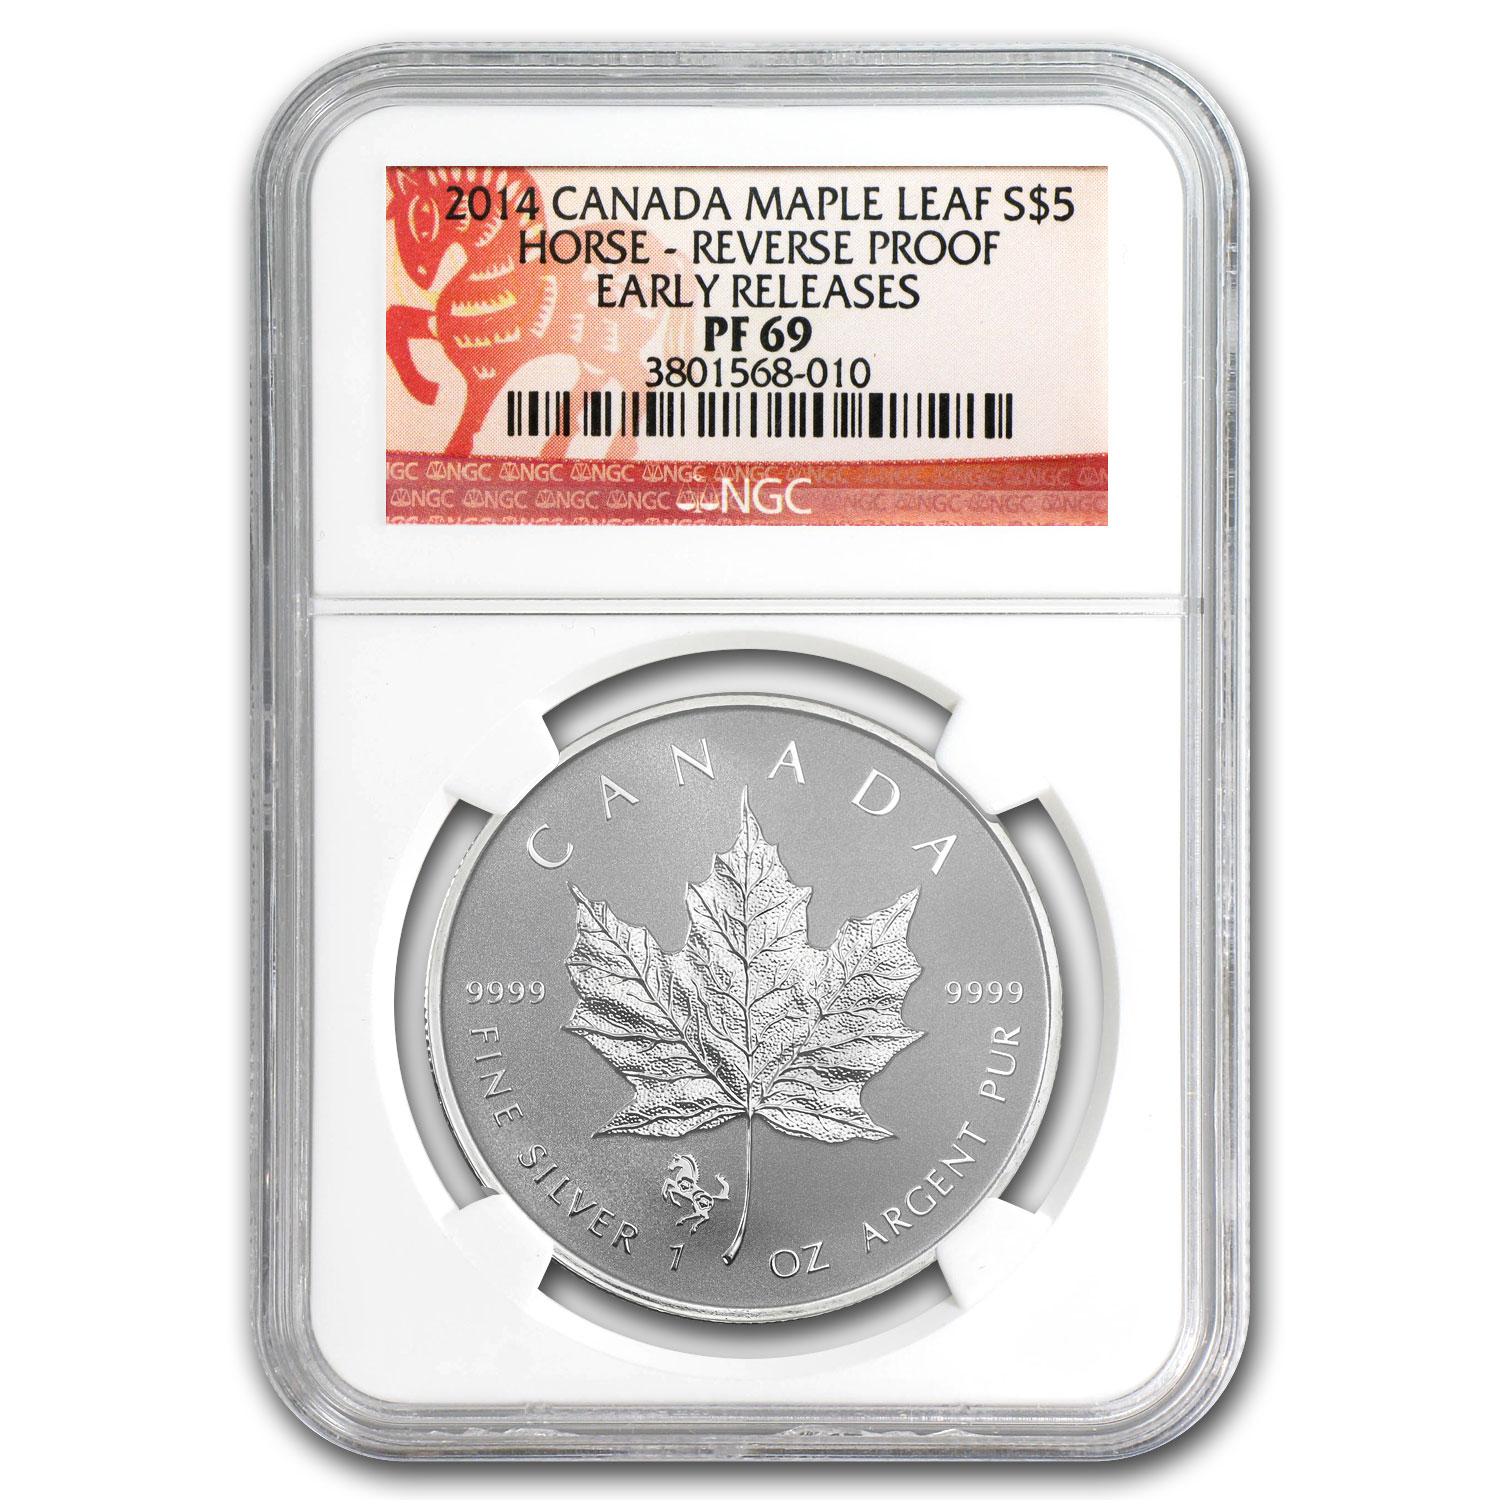 2014 1 oz Silver Canadian Maple Leaf - Horse Privy - PF-69 NGC ER